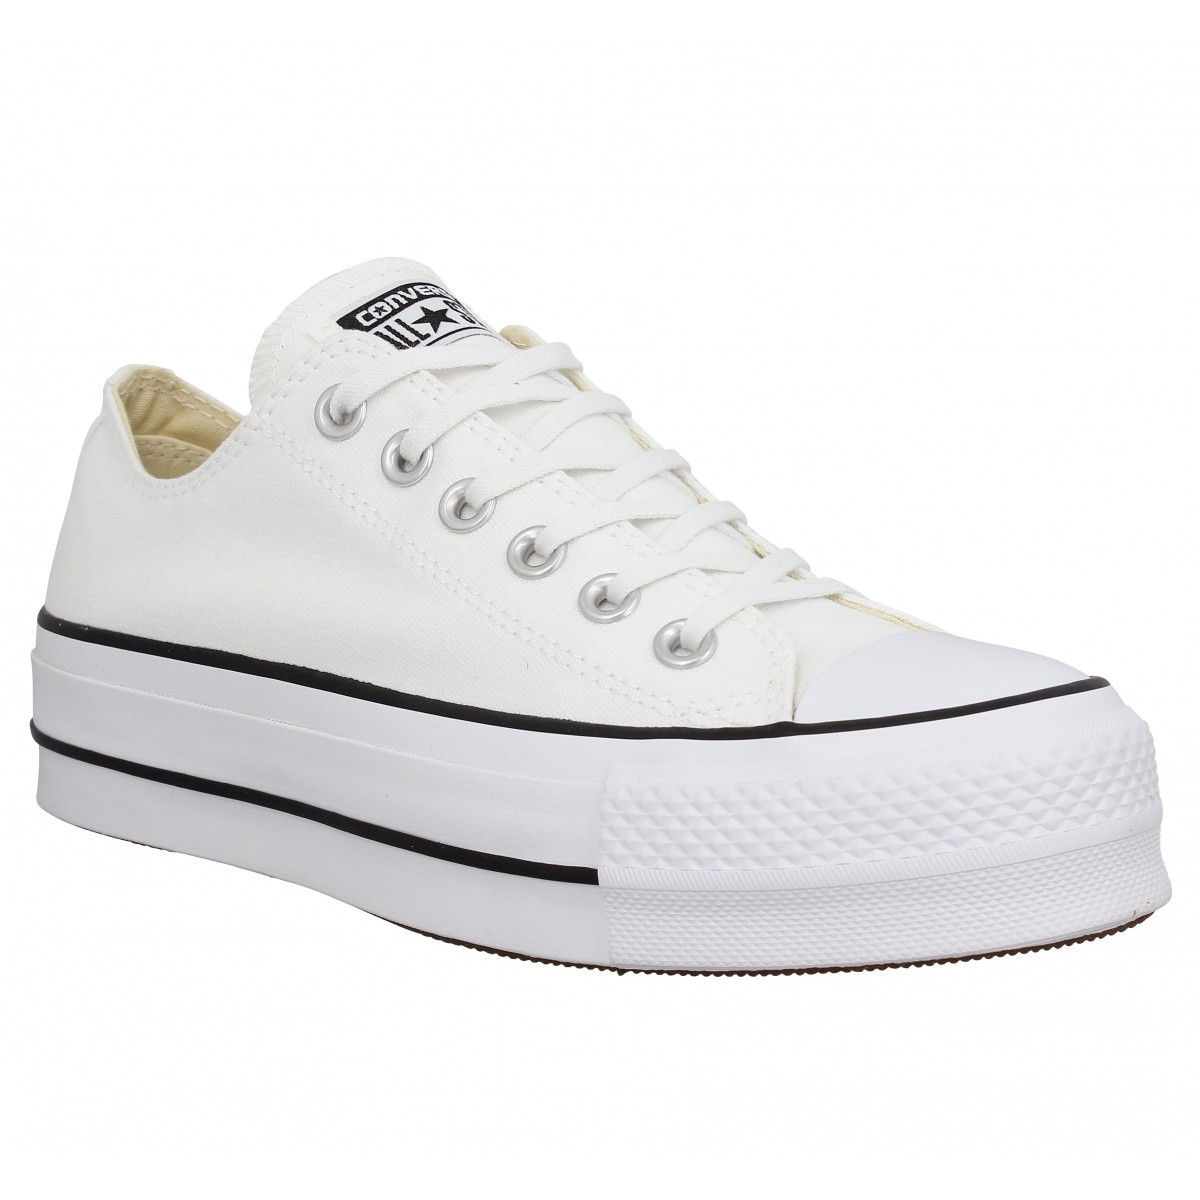 CONVERSE Chuck Taylor All Star Lift toile Femme Blanc